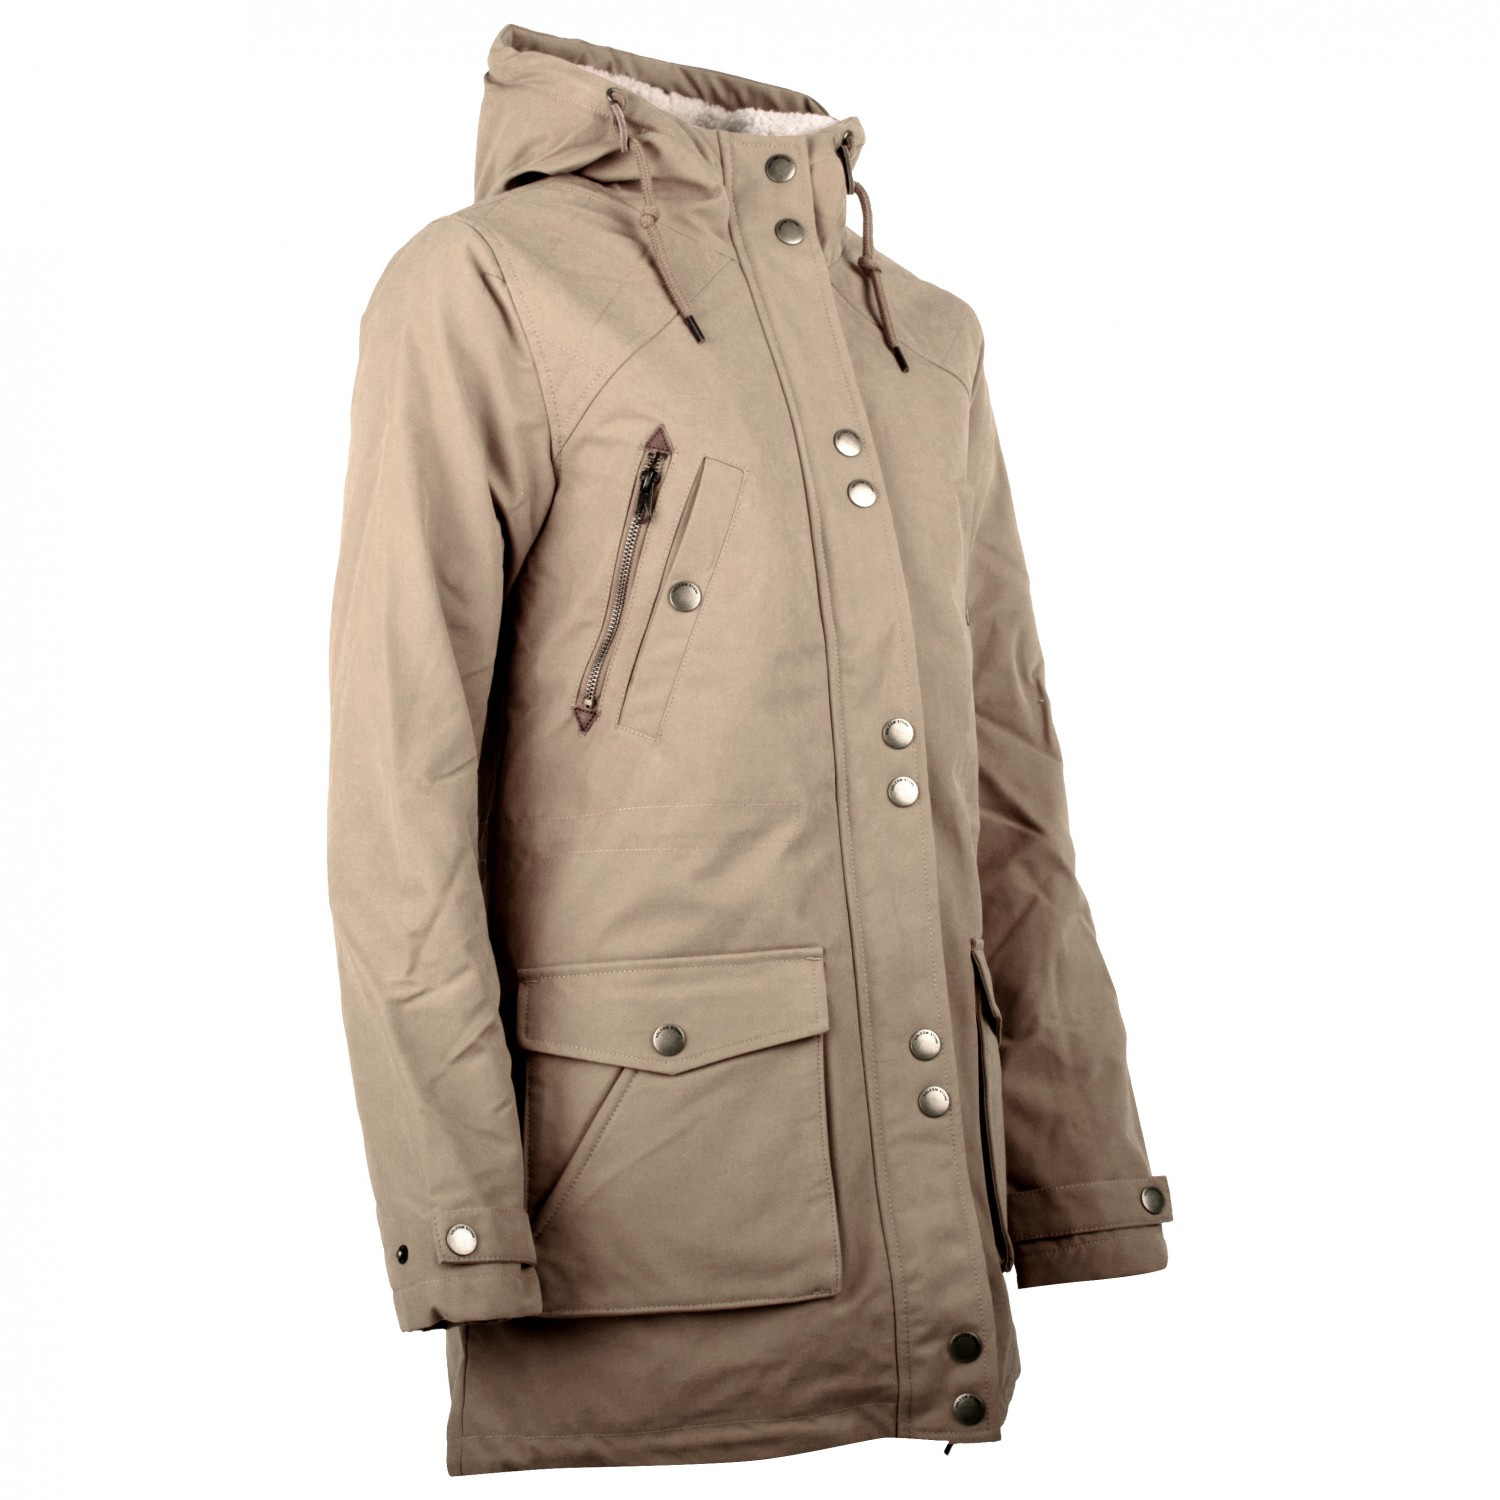 Jas Walk Volcom By Parka On wvfTSI